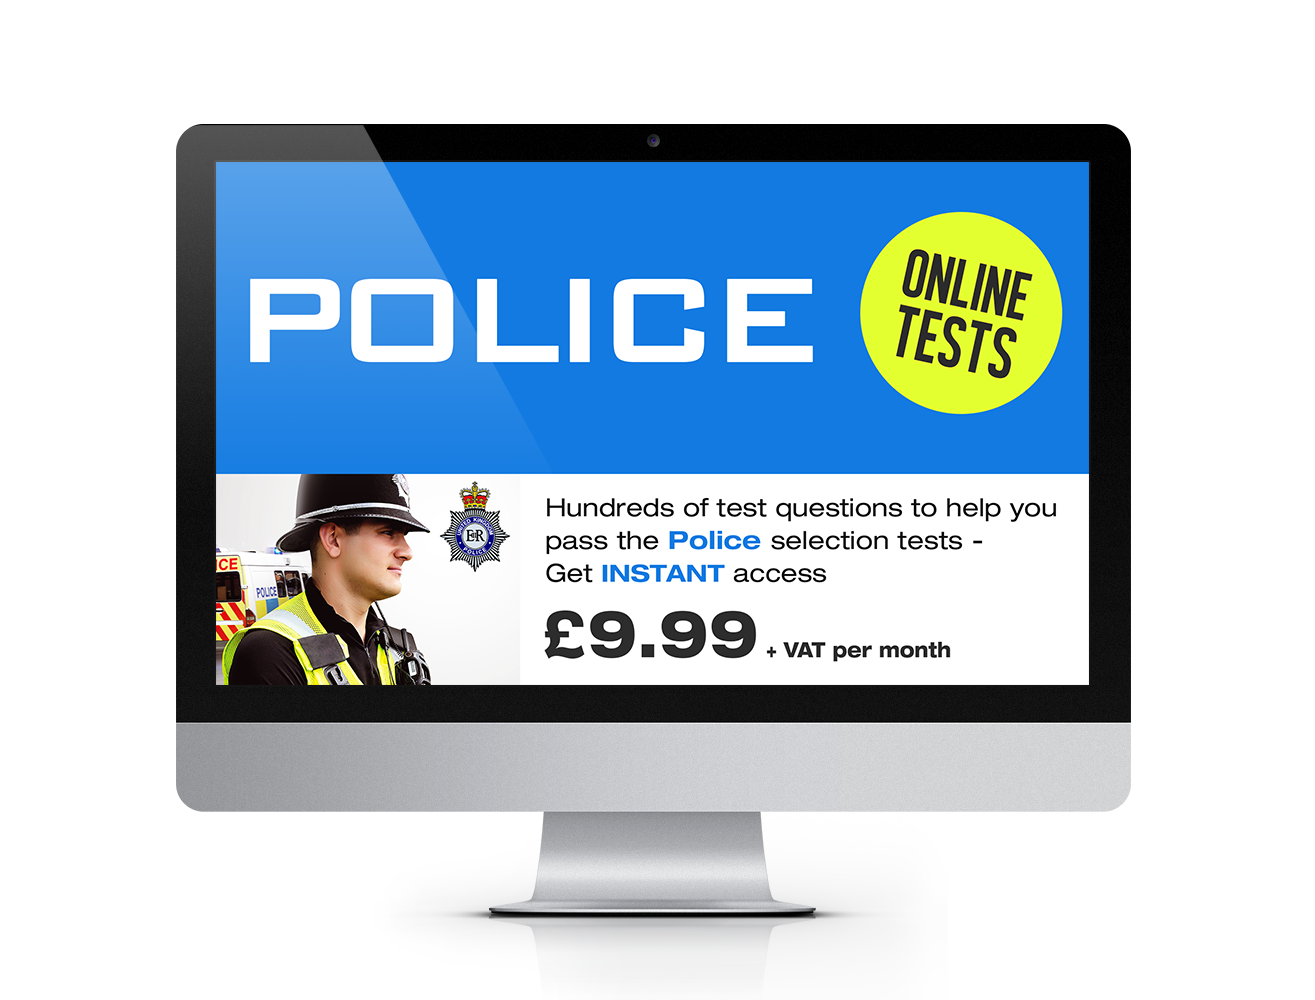 Online Police Tests 100s Of Test Questions How2become